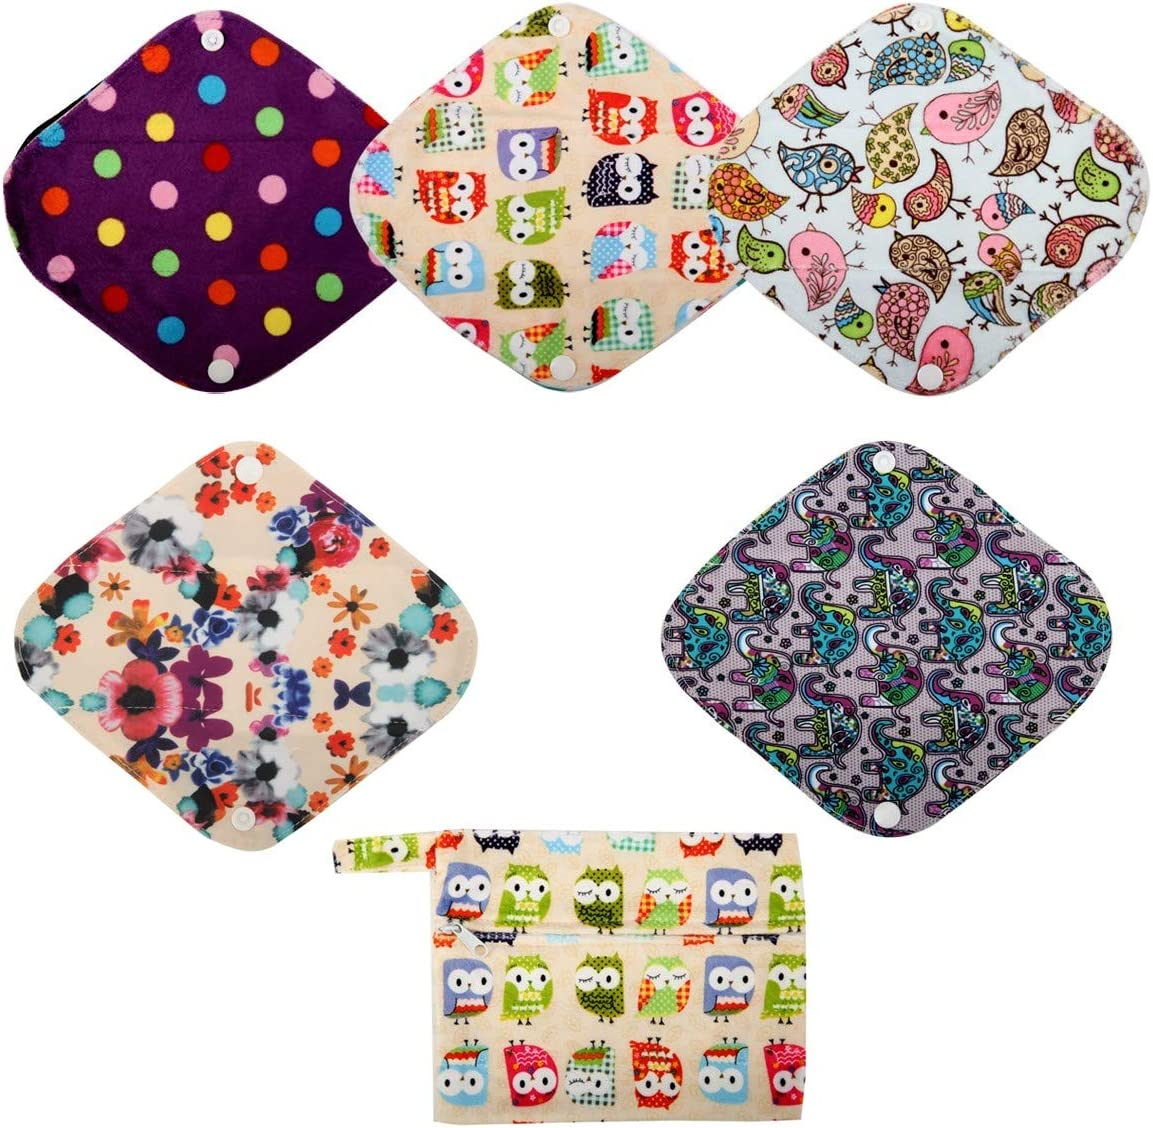 Incontinence Washable Panty Liner Cloth Wingless Panty Liners Surprise 5 Pack Cloth Pantyliners Cloth Pad Liners Set Reusable Liners